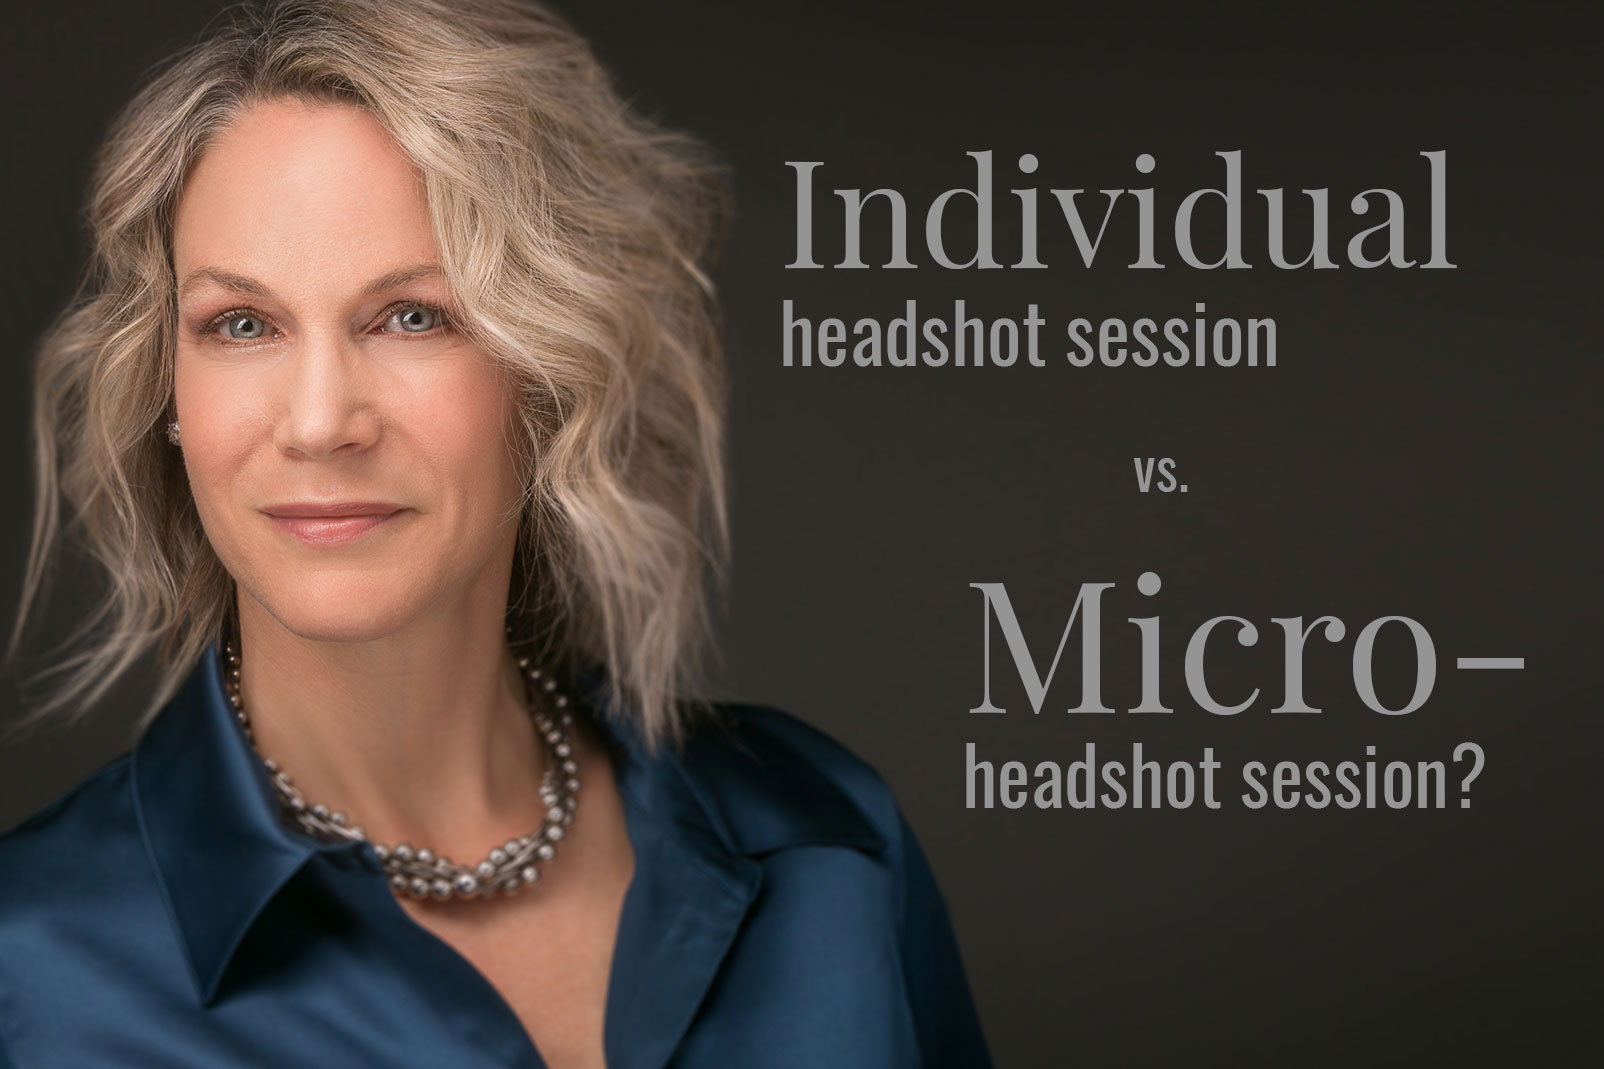 Individual vs. Micro headshot session